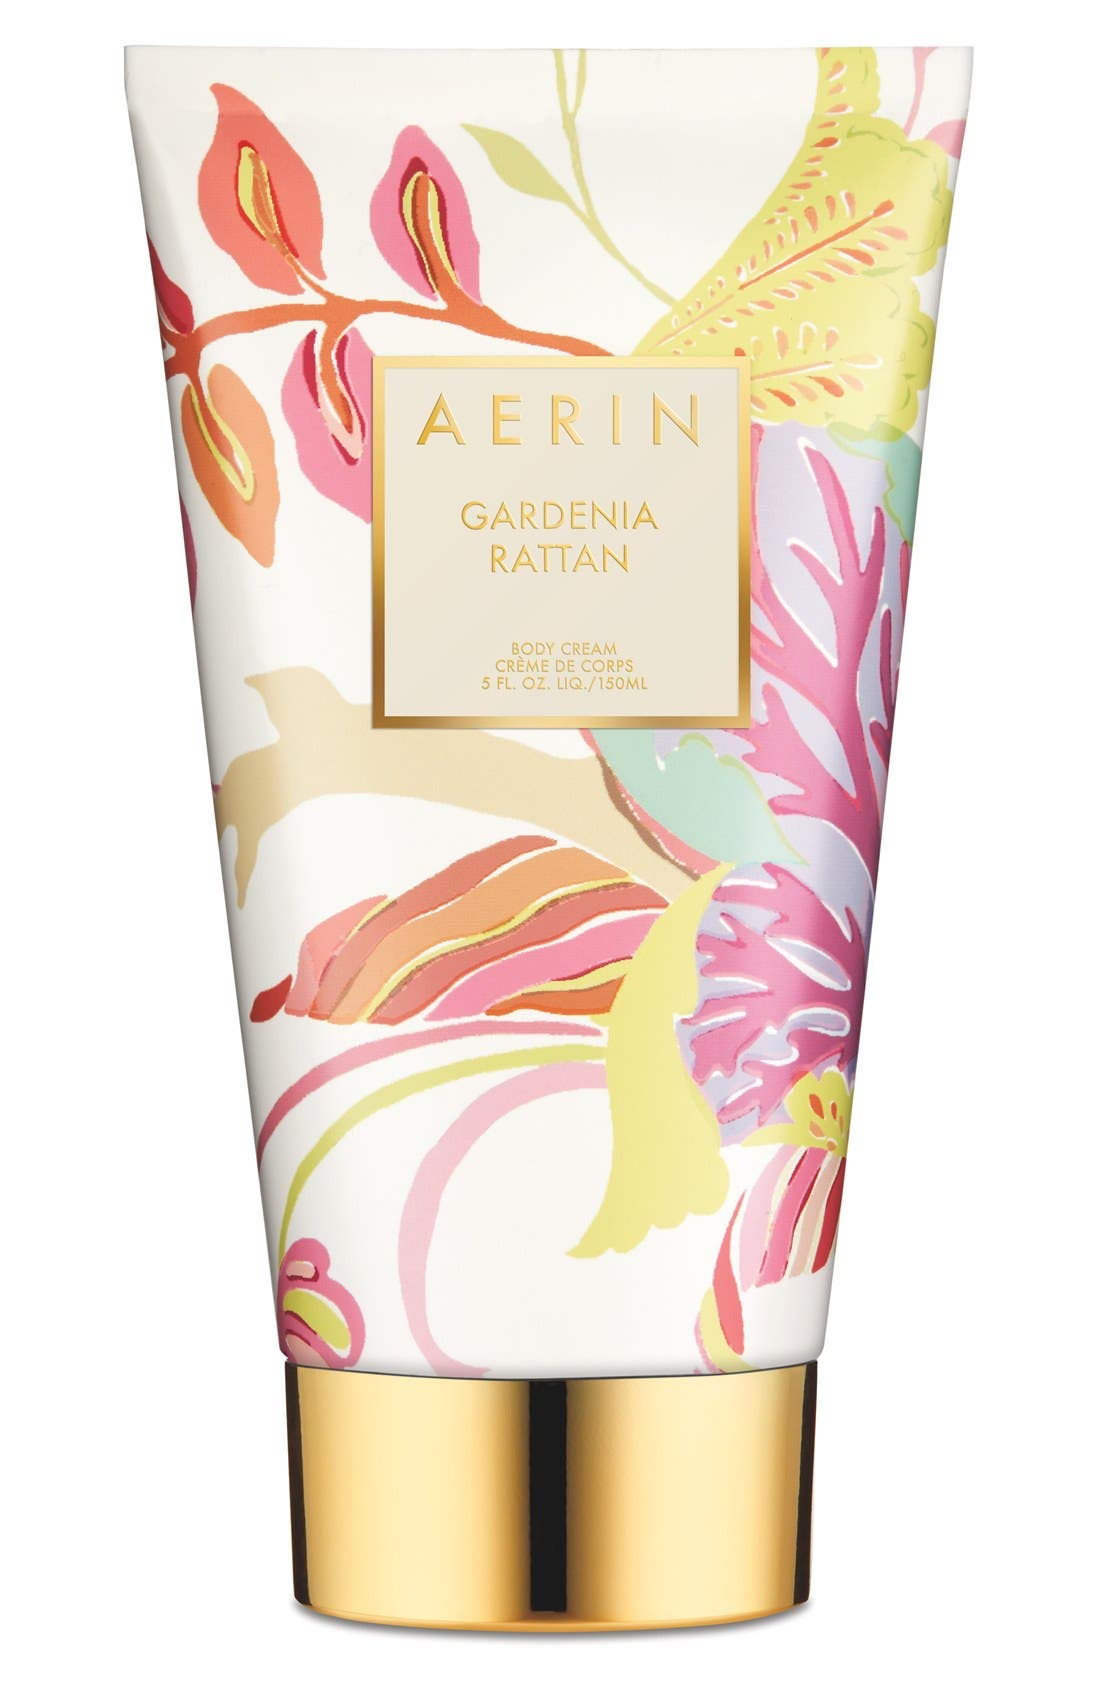 AERIN Beauty Gardenia Rattan Body Cream